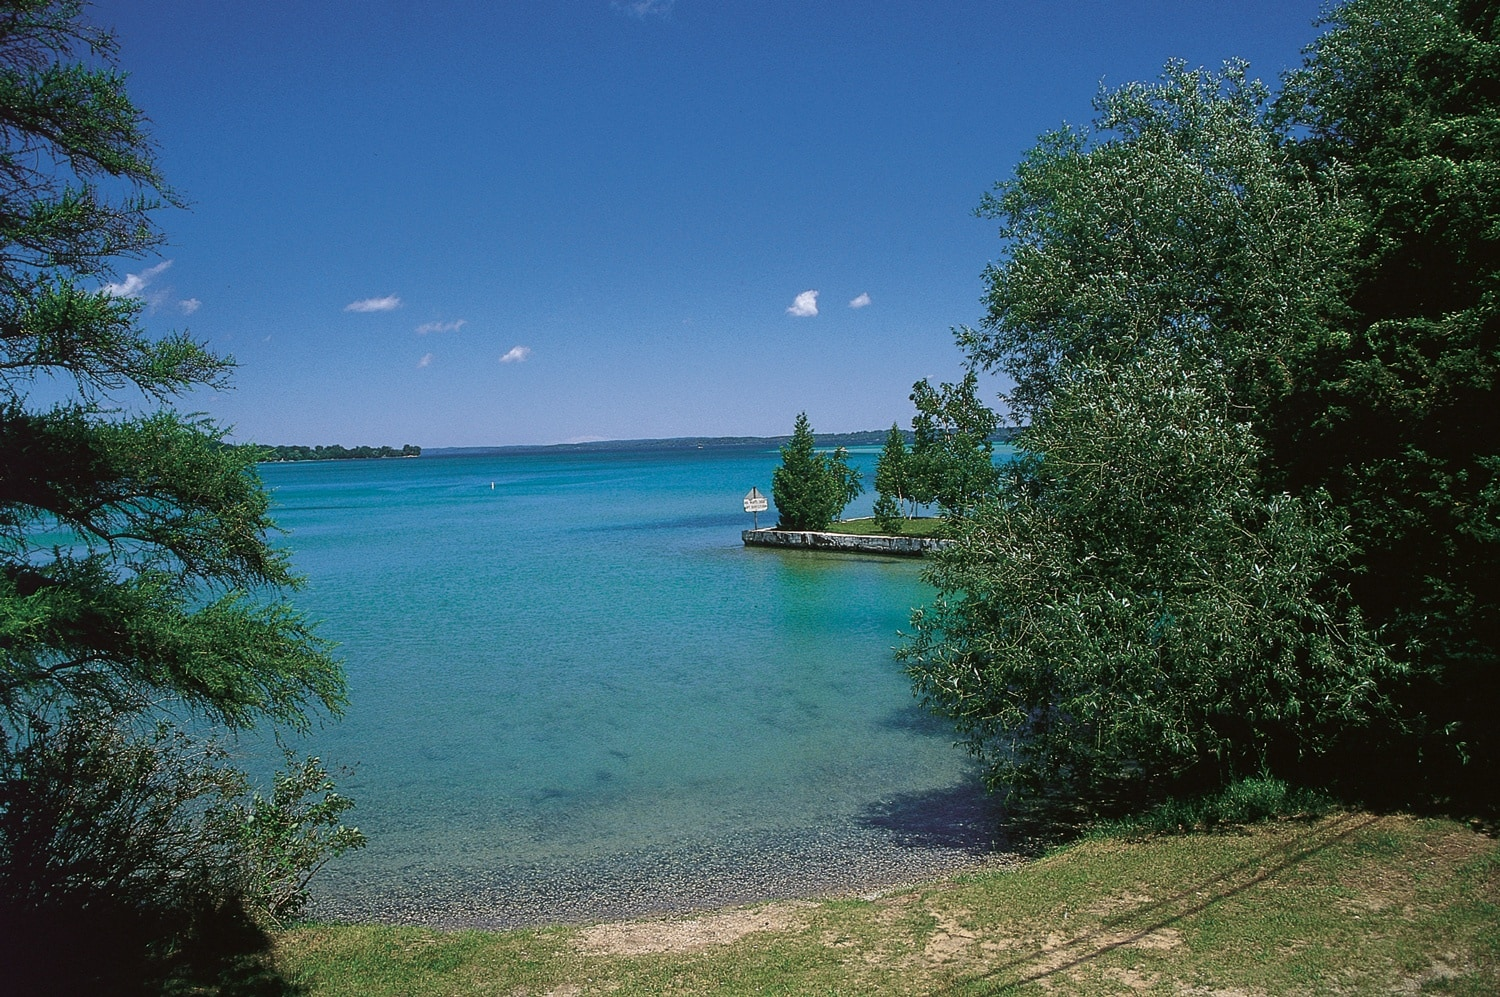 Iconic Outdoor Attraction Torch Lake In Northern Michigan